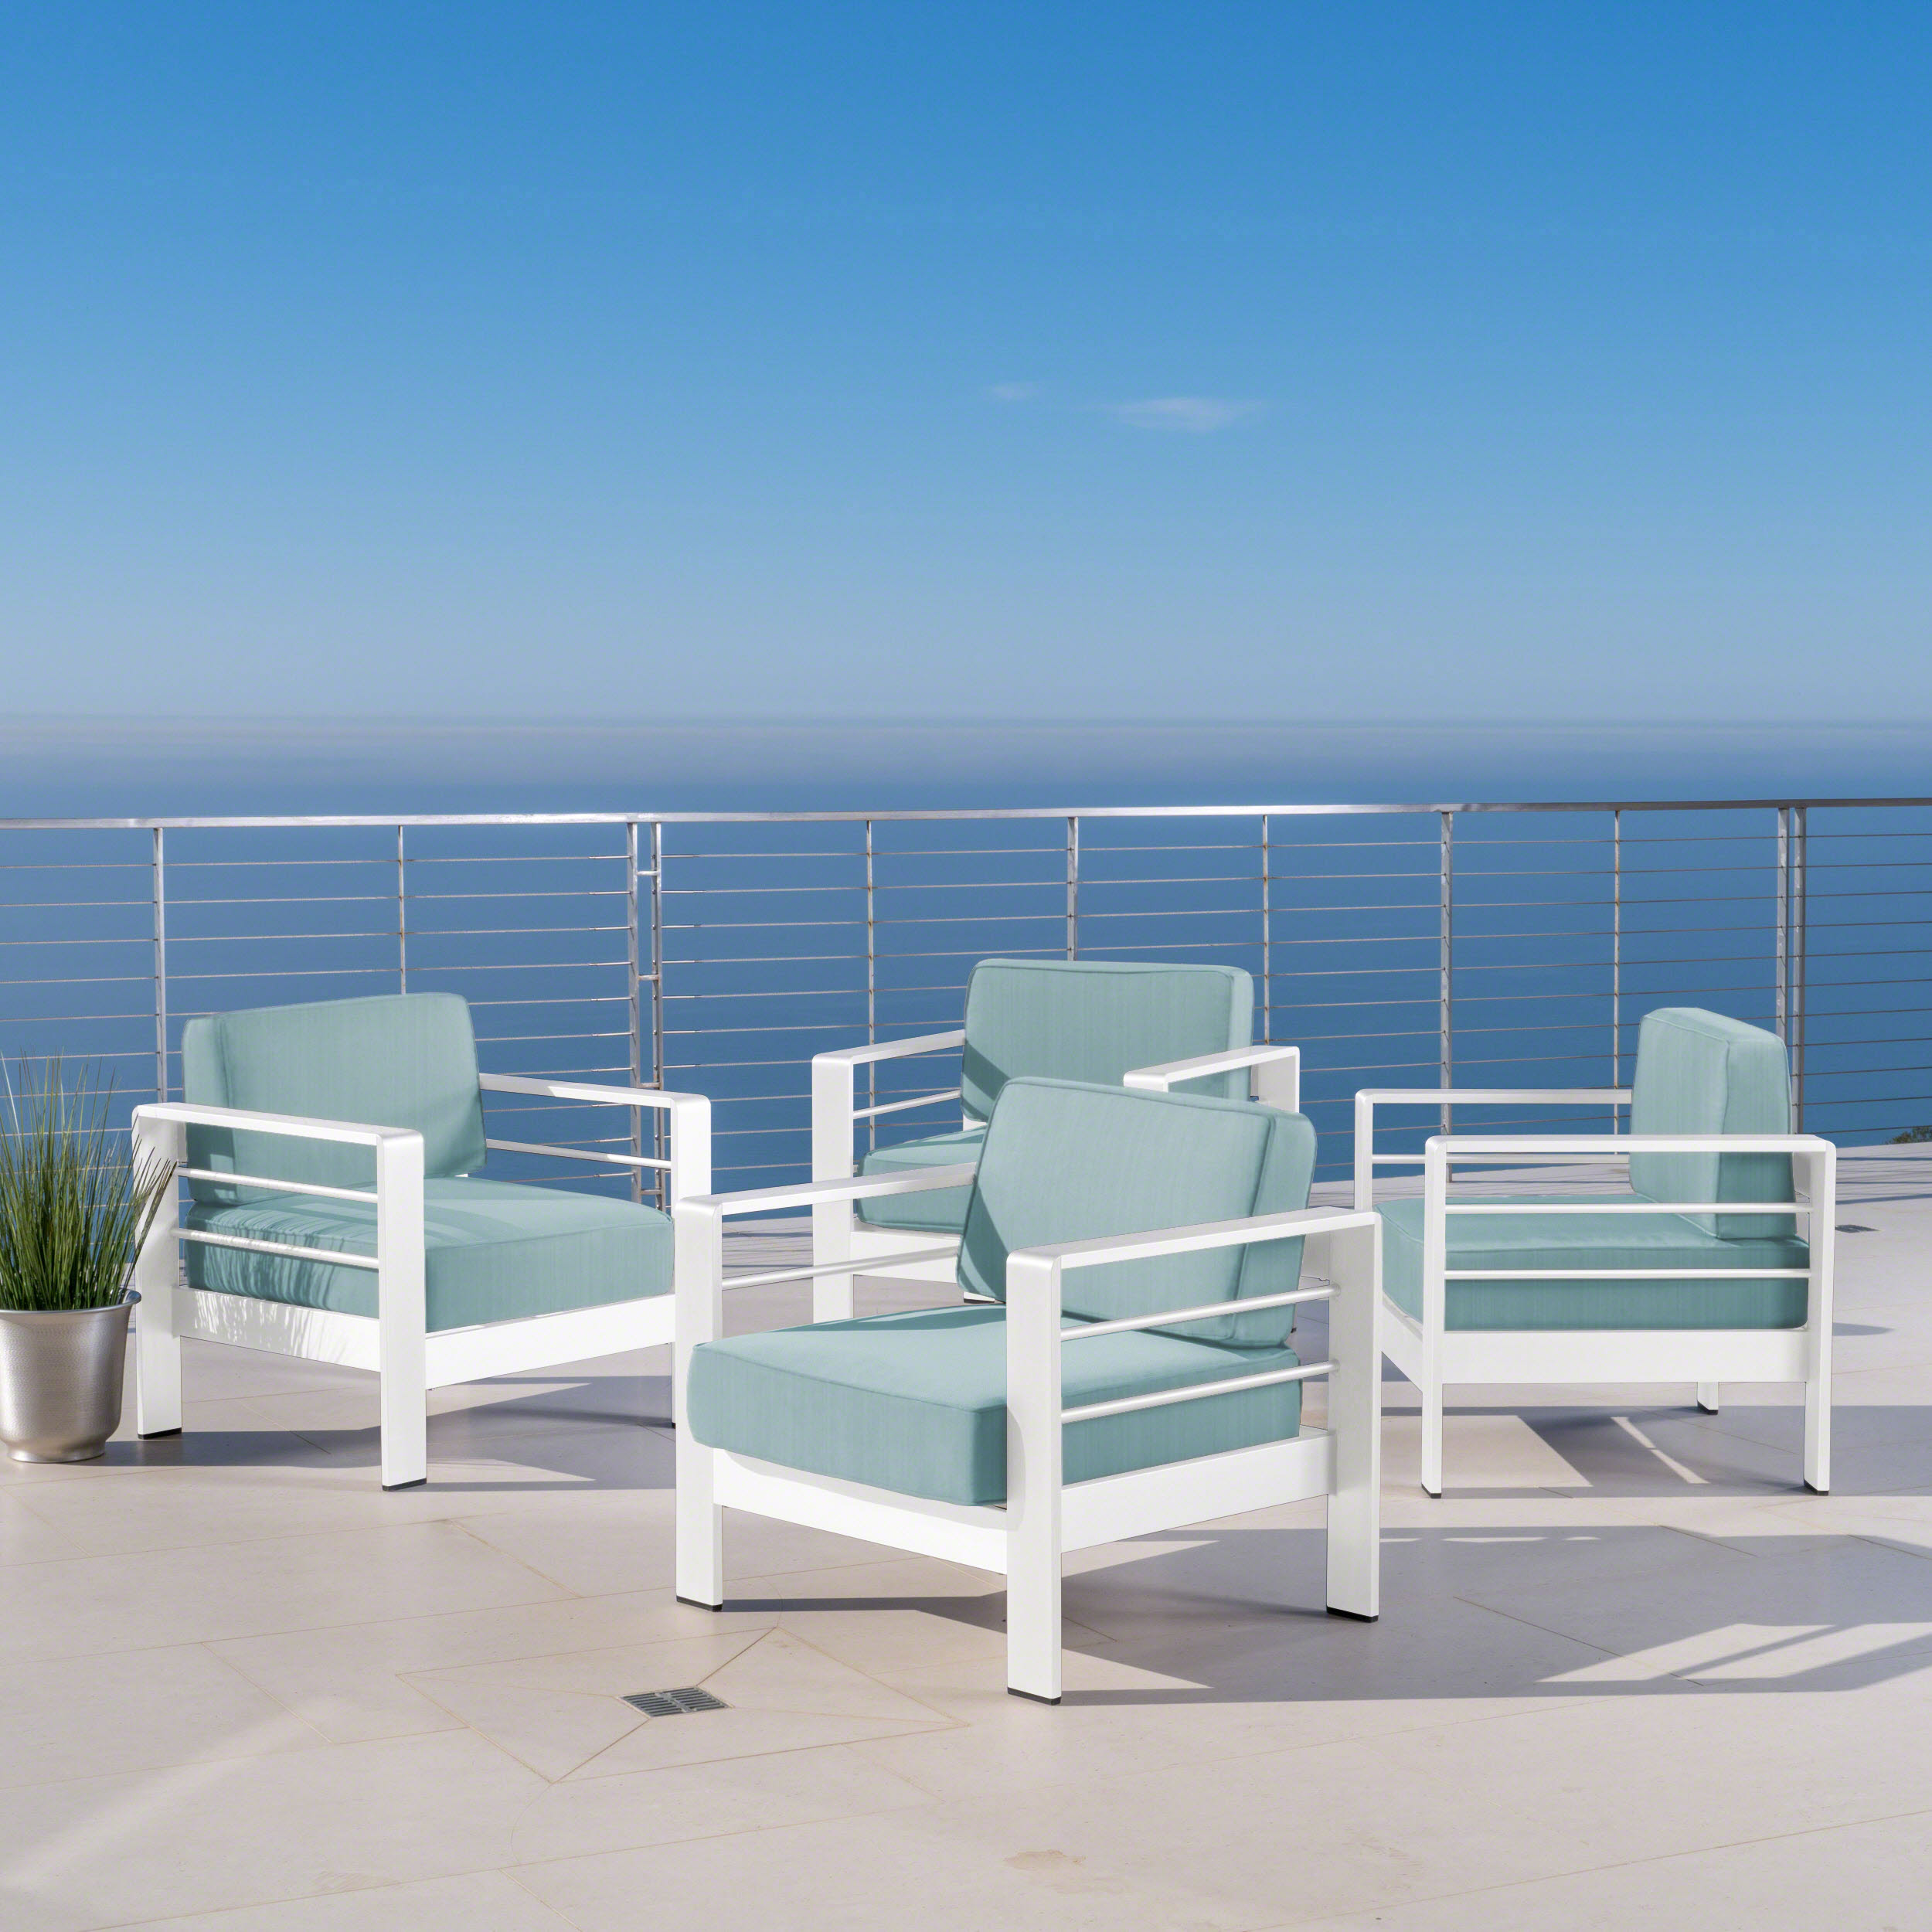 Rivera Outdoor Aluminum Club Chairs with Cushions, White & Teal.